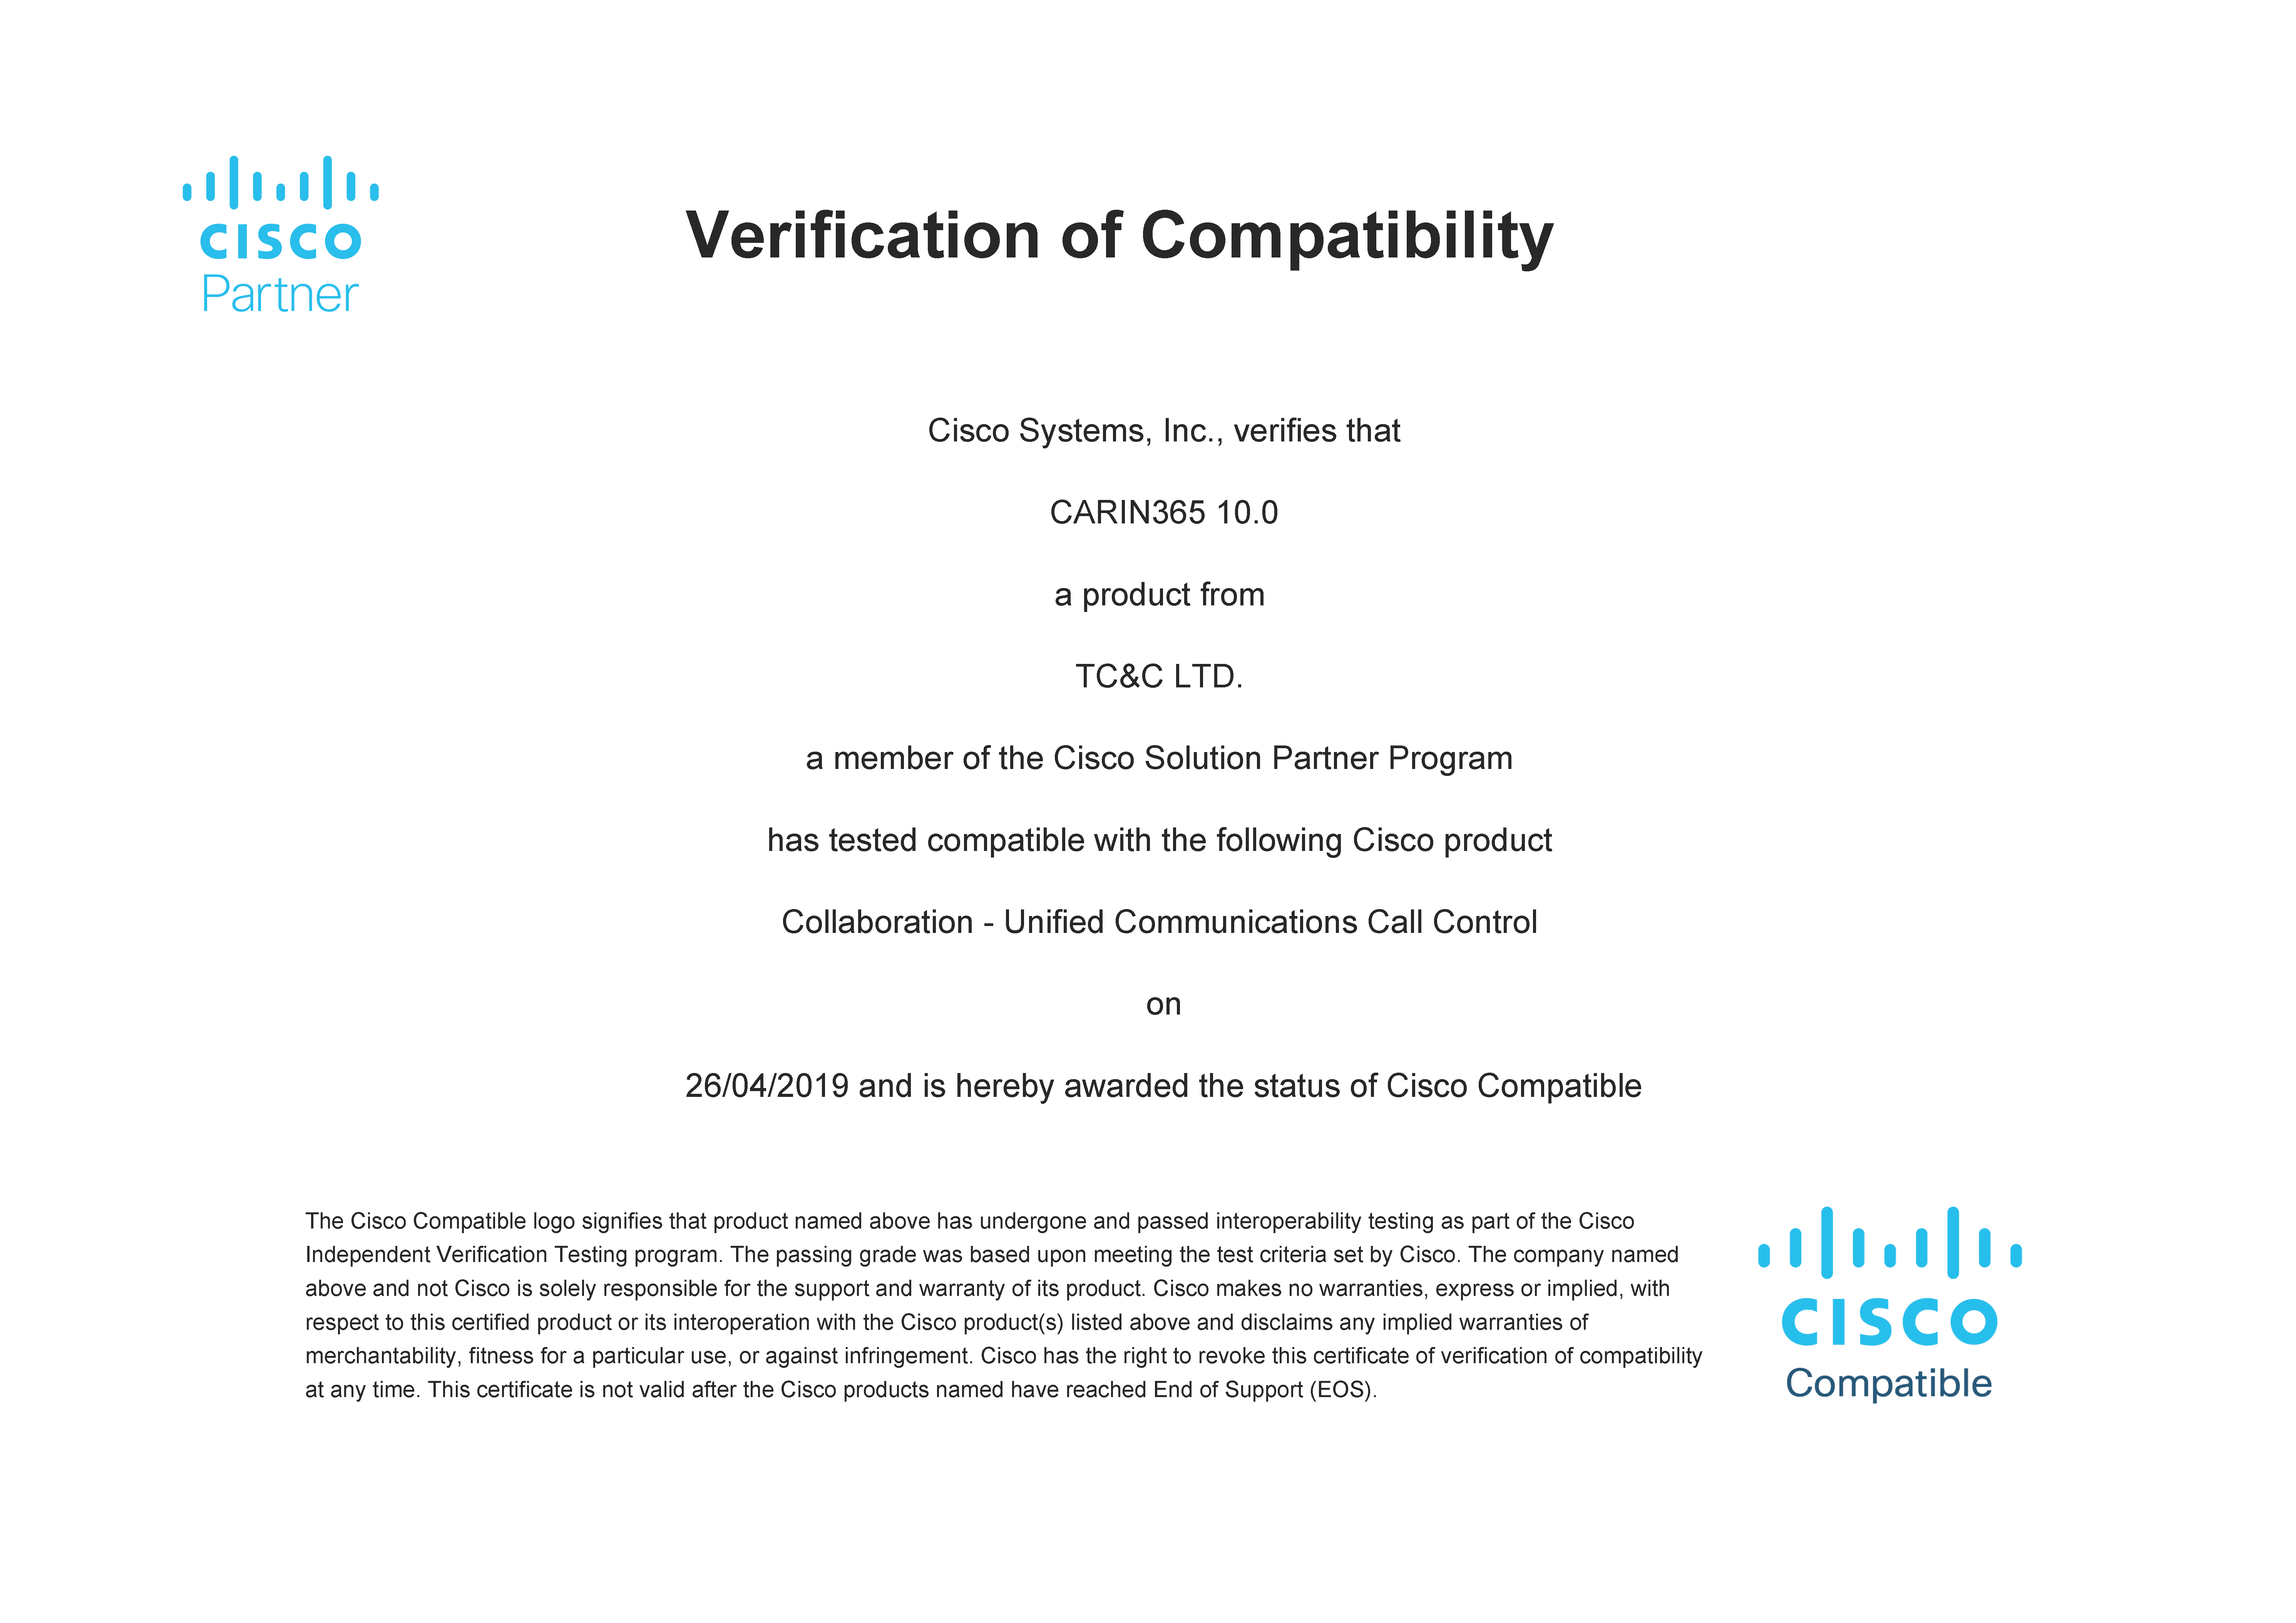 CARIN365 10.0 Cisco Compatibility Certification